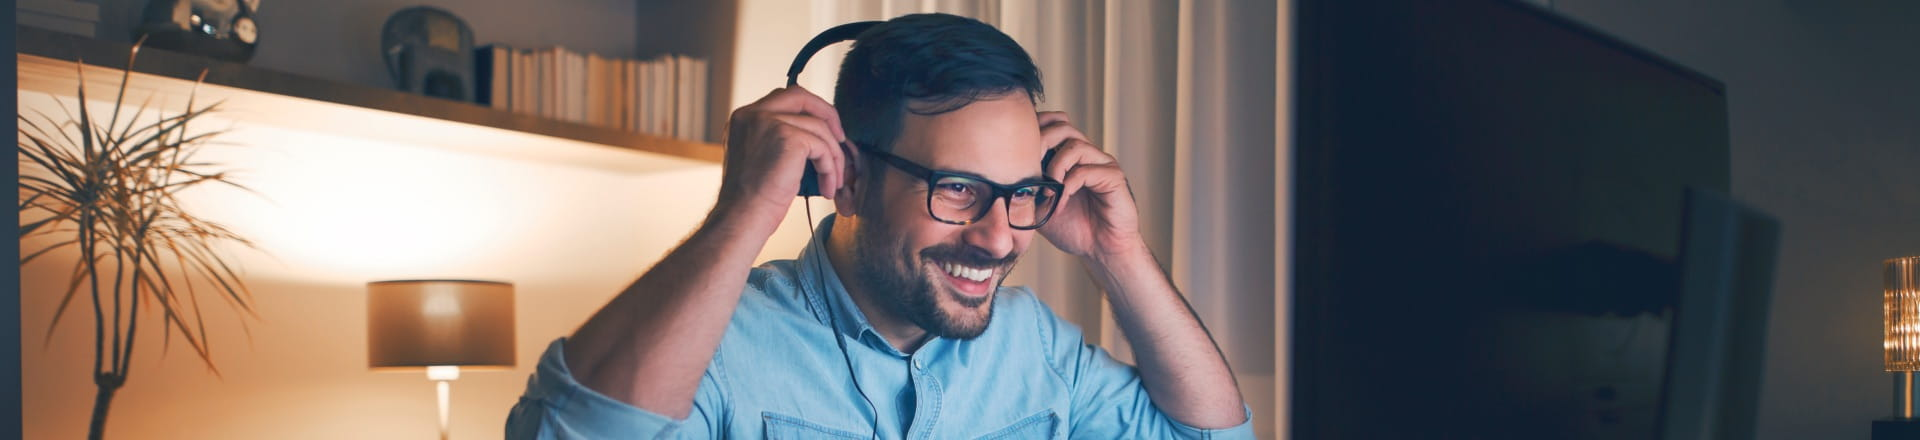 A man wearing a headset while working from home